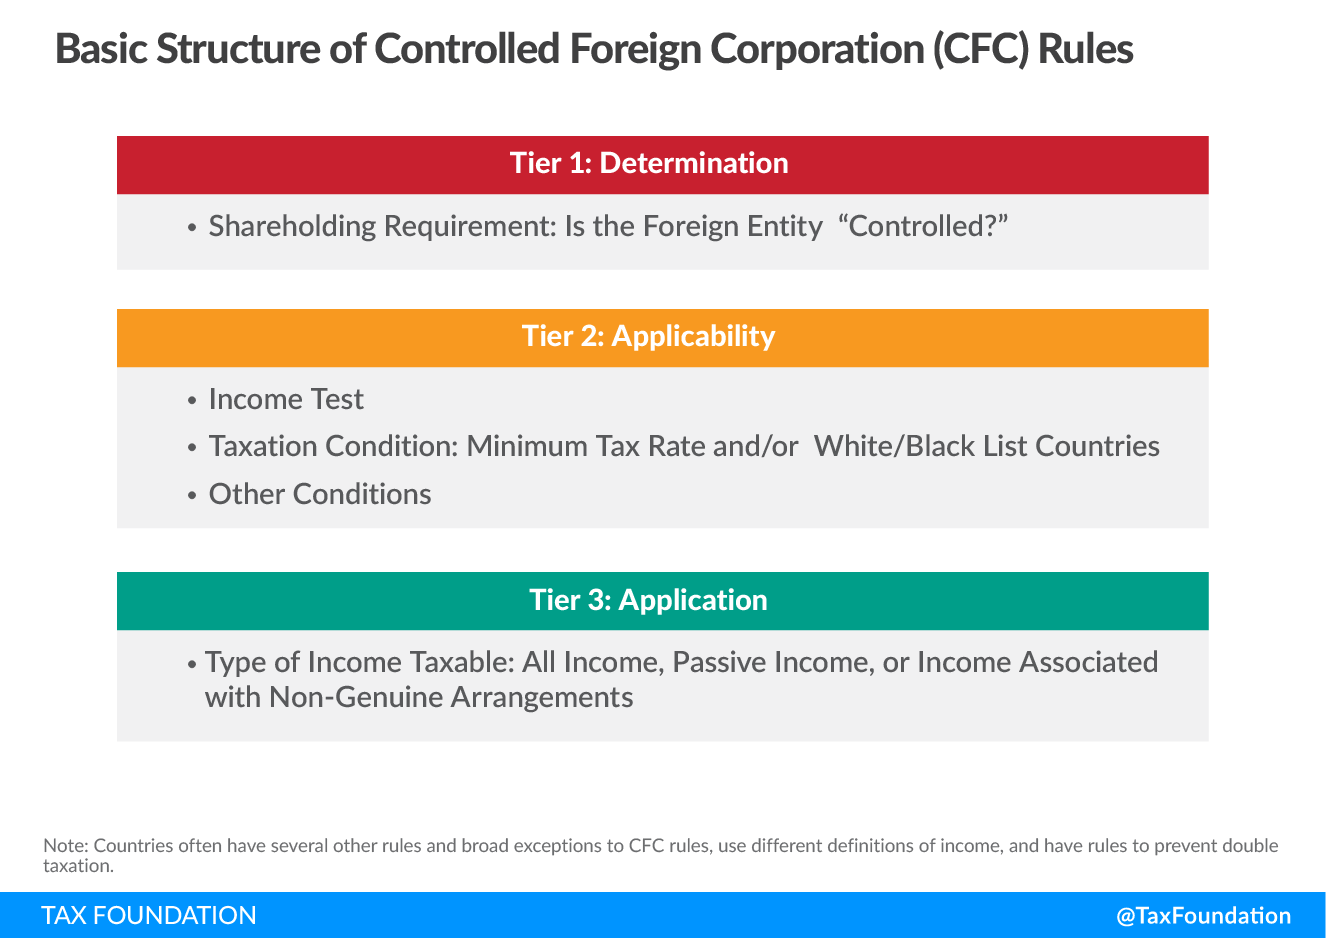 Controlled Foreign Corporation Rules or CFC rules structure. Anti-Base Erosion Provisions and Territorial Tax Systems in OECD Countries (2)